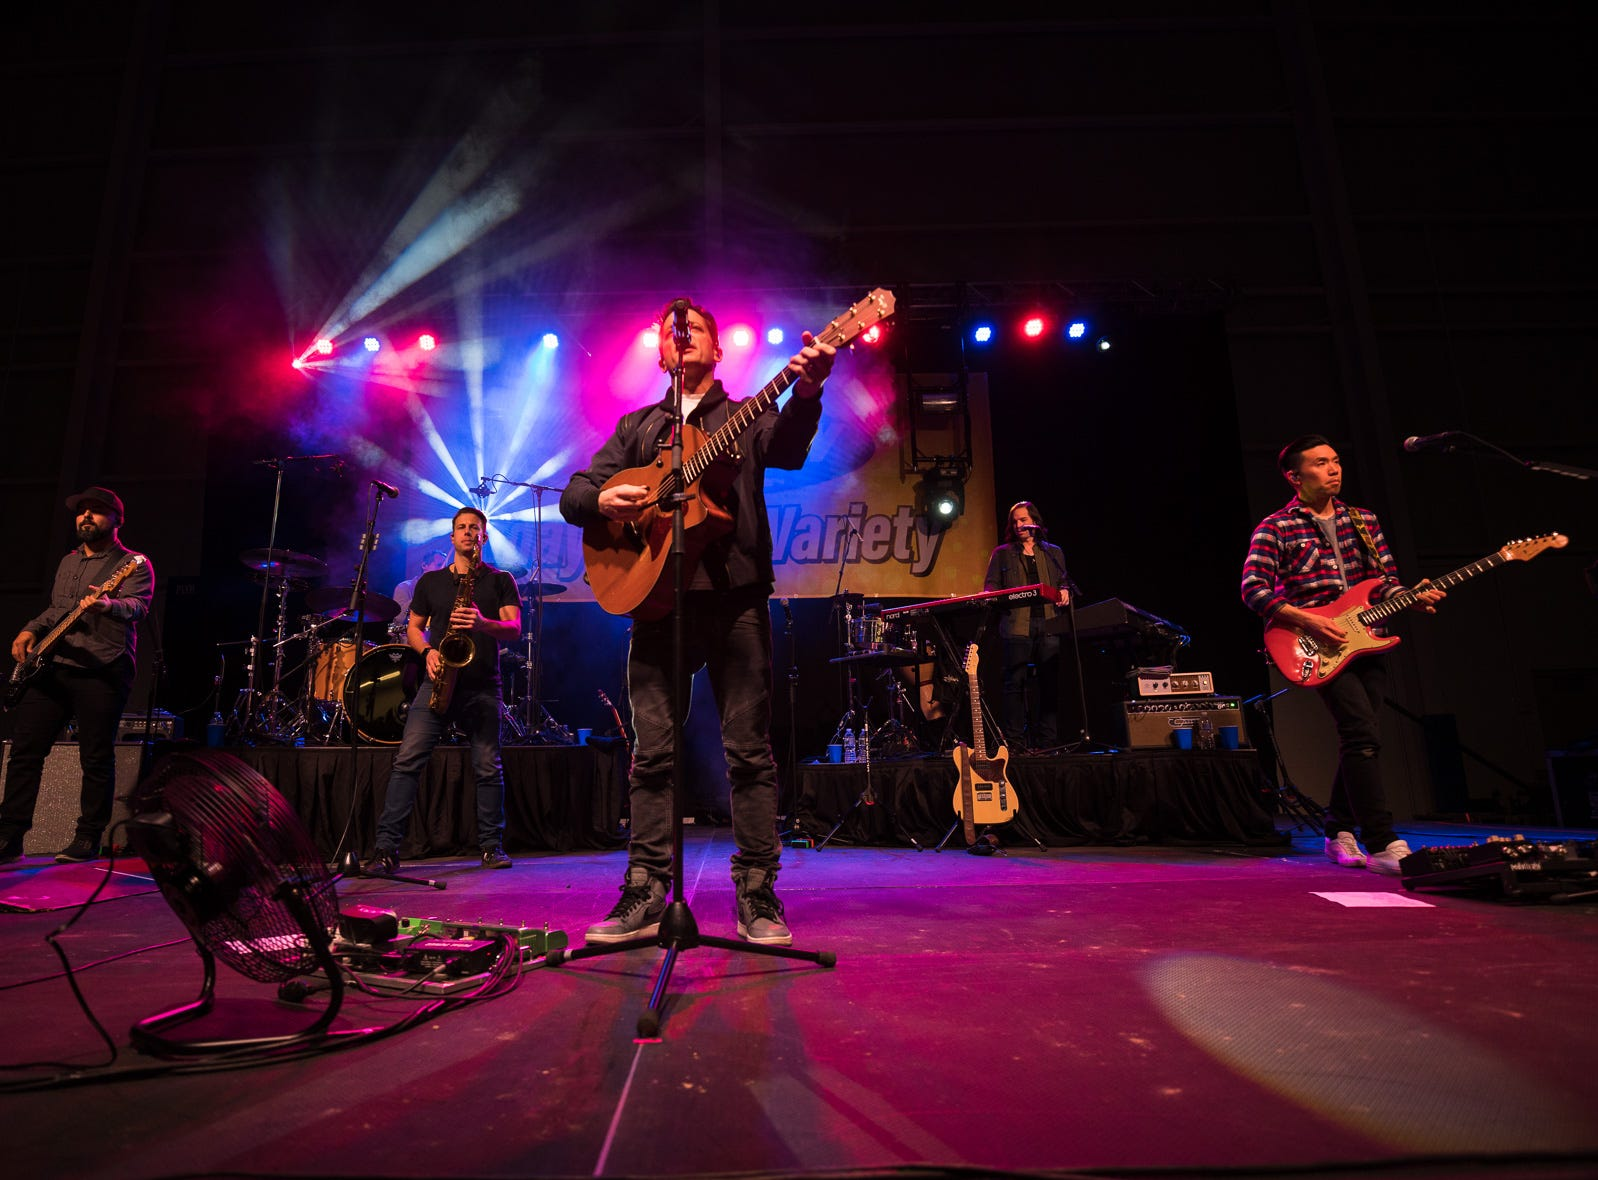 Maryland rockers O.A.R. were the first act to perform at the new 76ers Fieldhouse in Wilmington on Feb. 16.